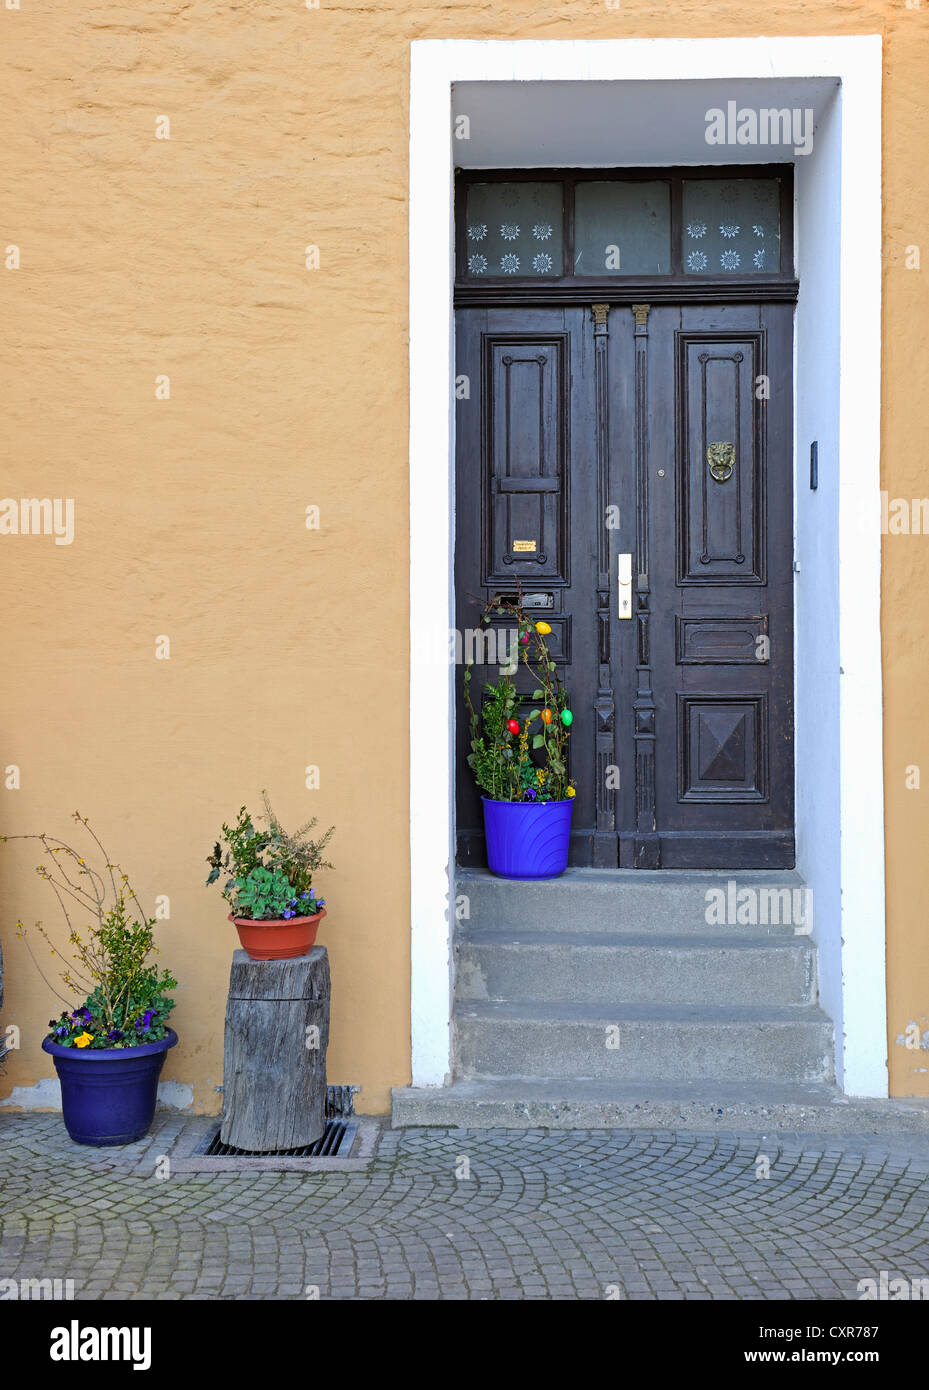 Easter Decoration In Front House Stock Photos & Easter Decoration In ...